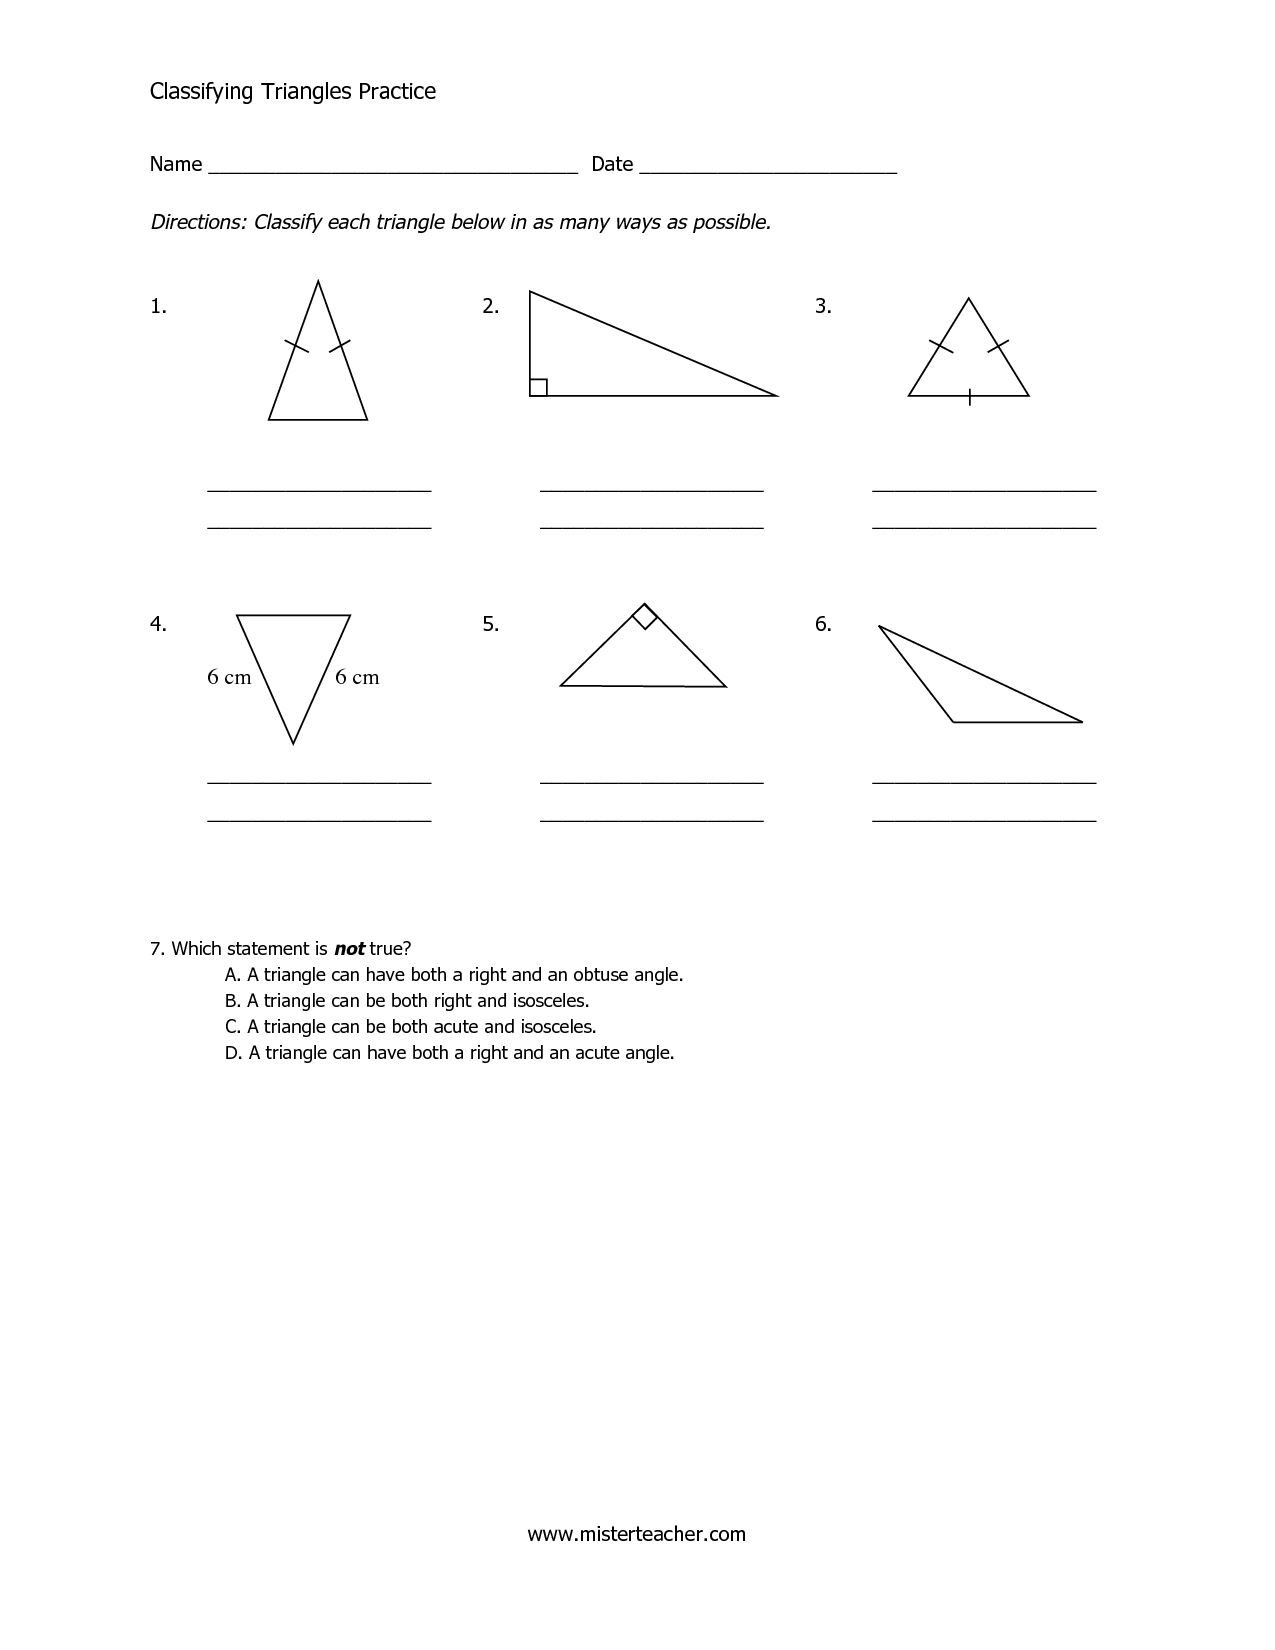 13 Best Images Of Classifying Triangles By Angles